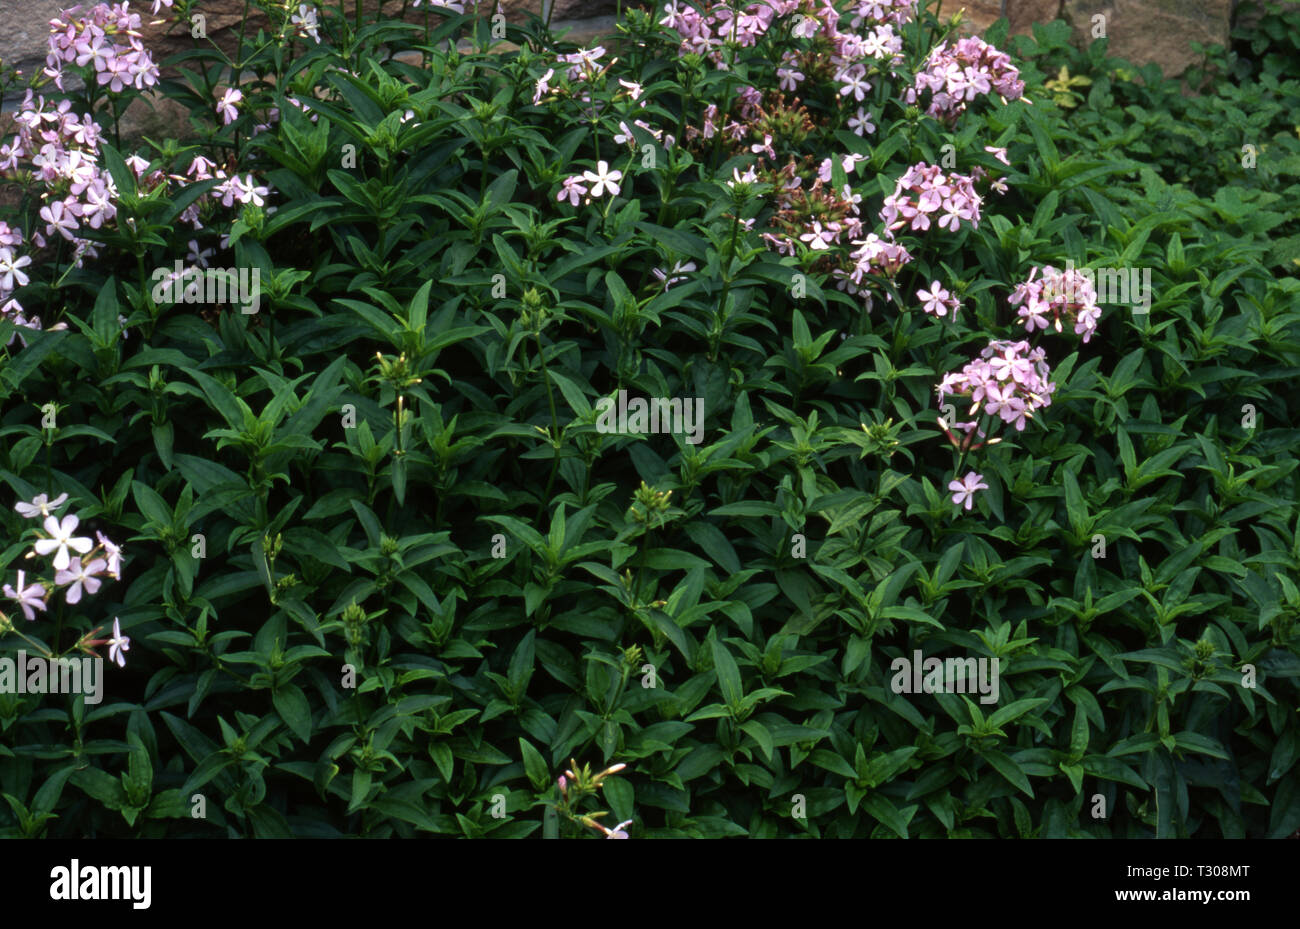 SOAPWORT, BOUNCING BET (SAPONARIA OFFICINALIS) IS A COMMON PERENNIAL PLANT FROM THE CARNATION FAMILY. (Caryophyllaceae). - Stock Image